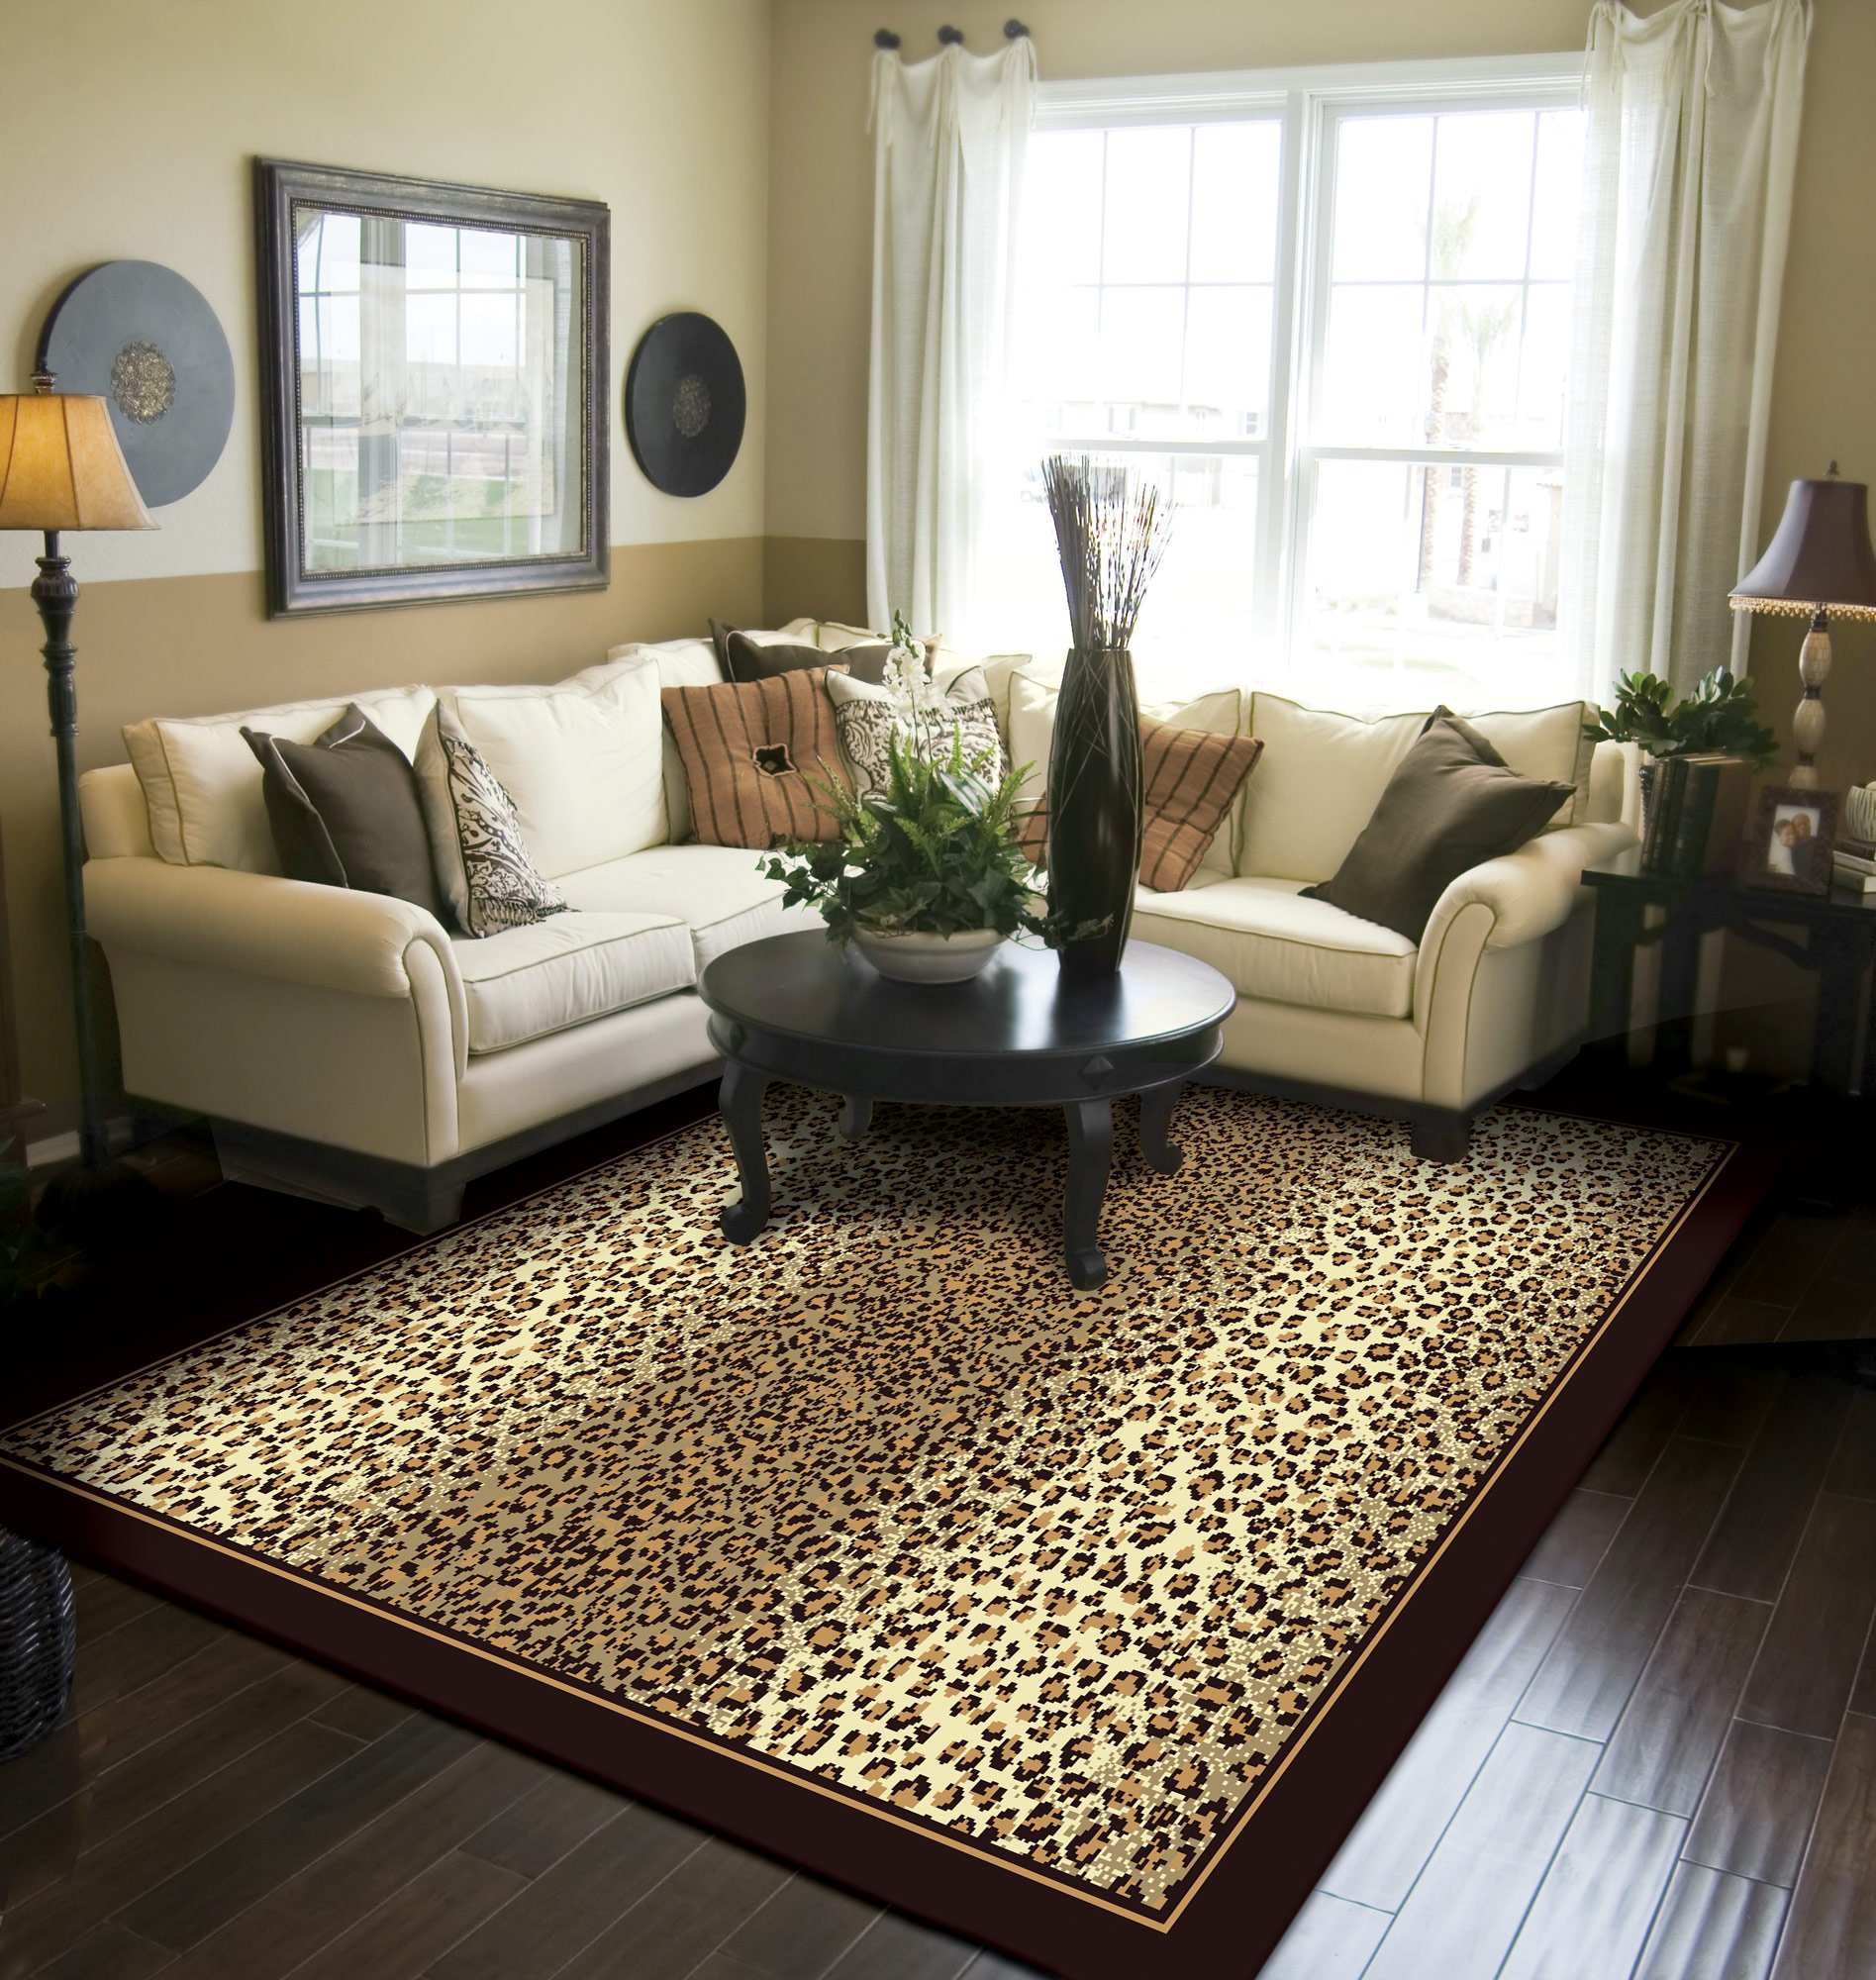 Modern Area Rug Brown Cheetah Leopard Large Rugs For Living Room 8x10 Clearance Under 100